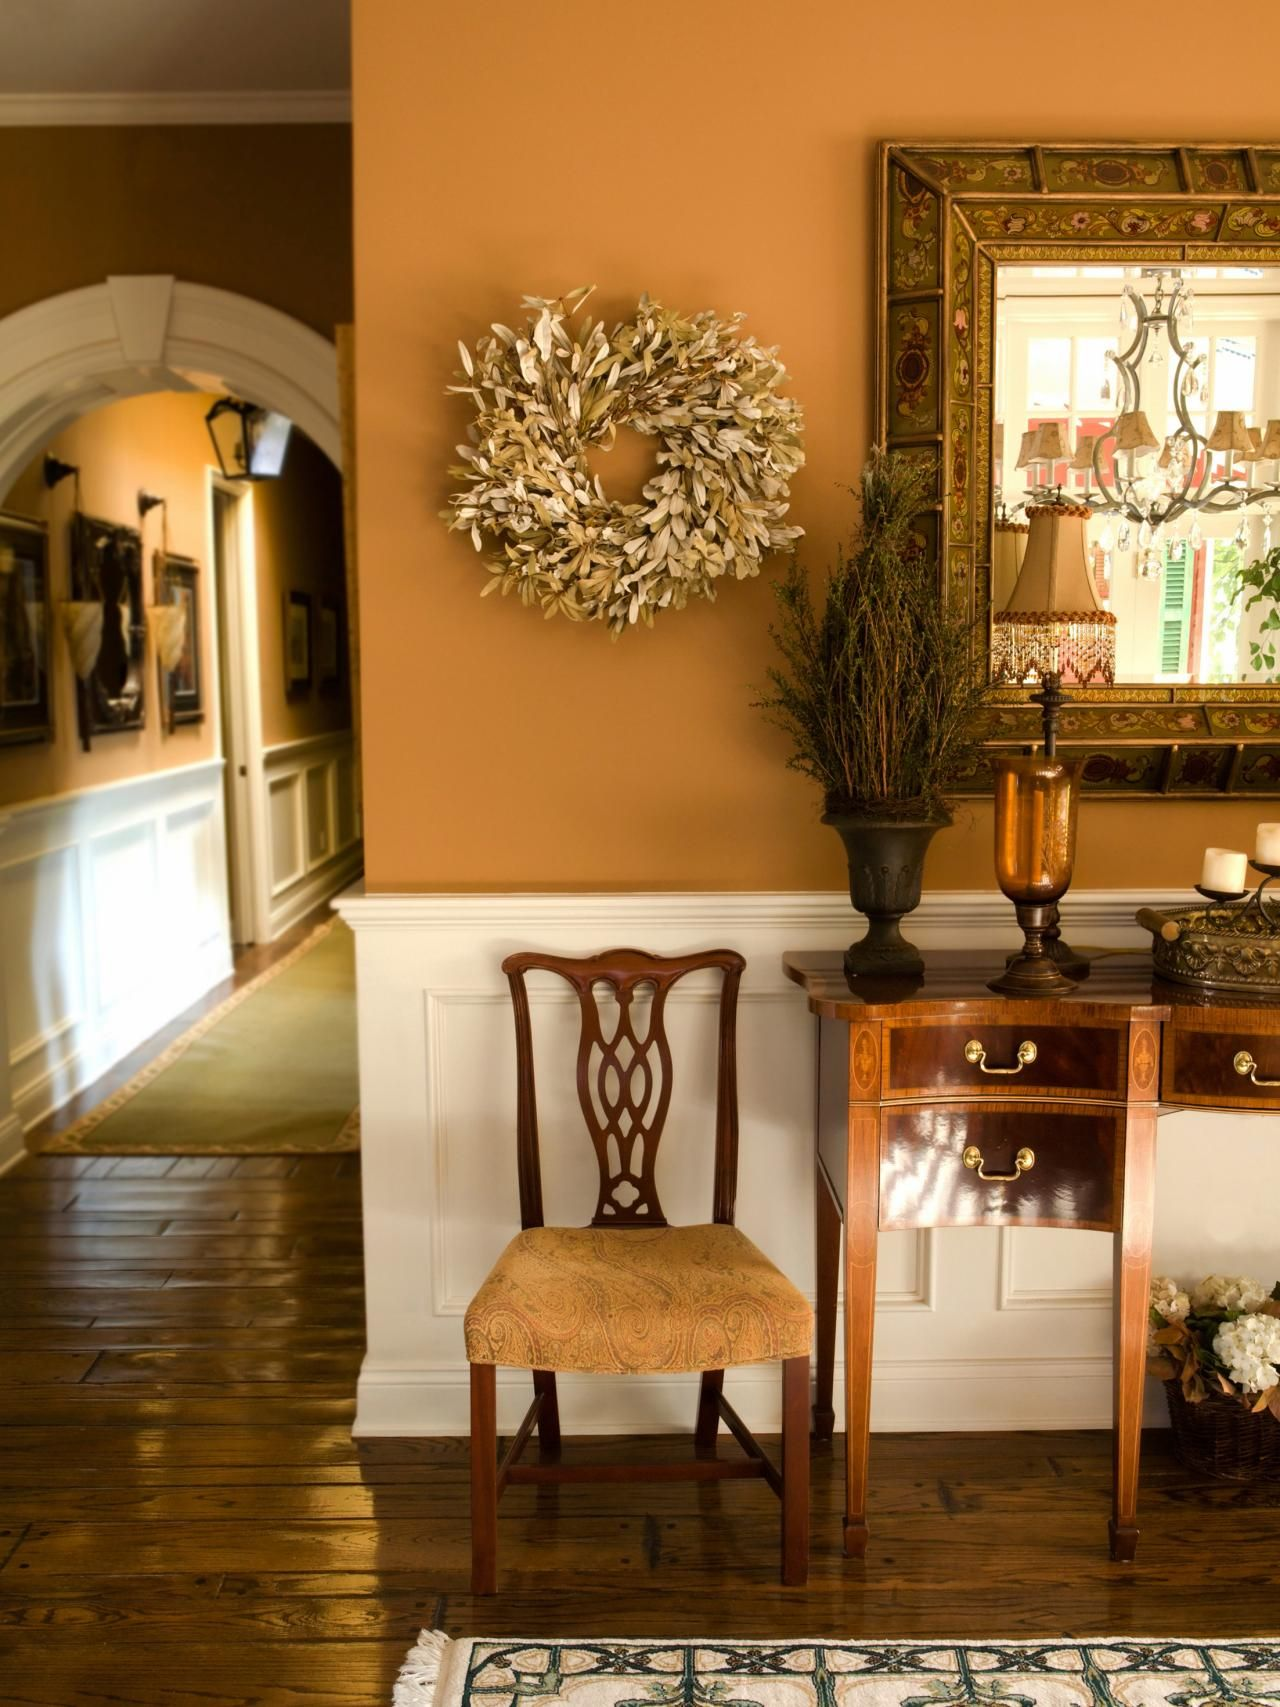 Fall Decorating Ideas: Simple Ways to Cozy Up | Projects ...